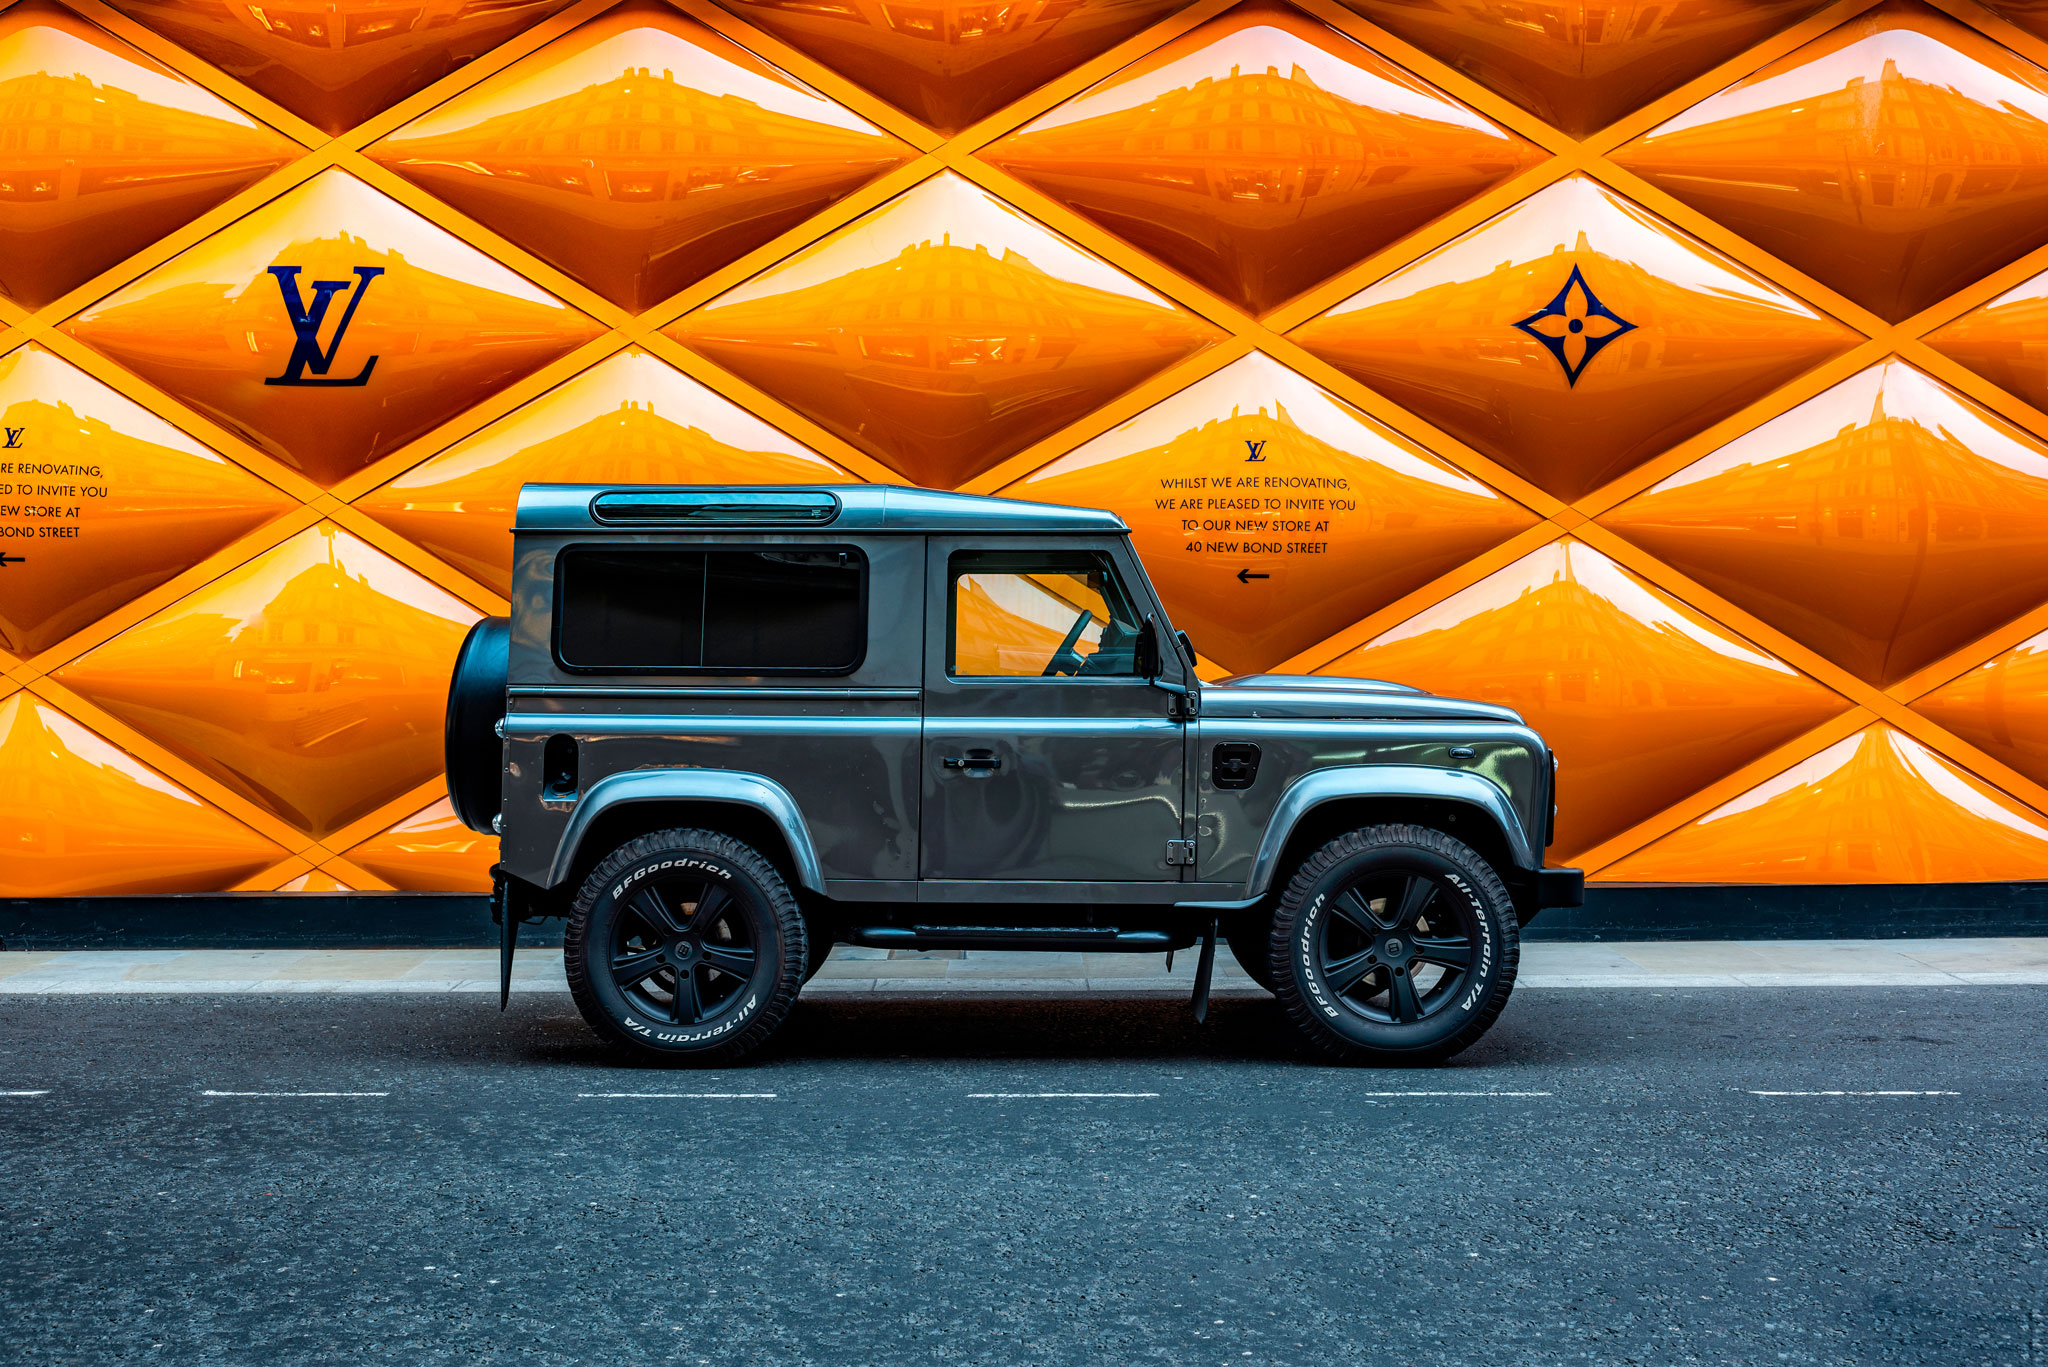 Bespoke Defender outside Louis Vuitton London Photographer DeanWrightAutomotive